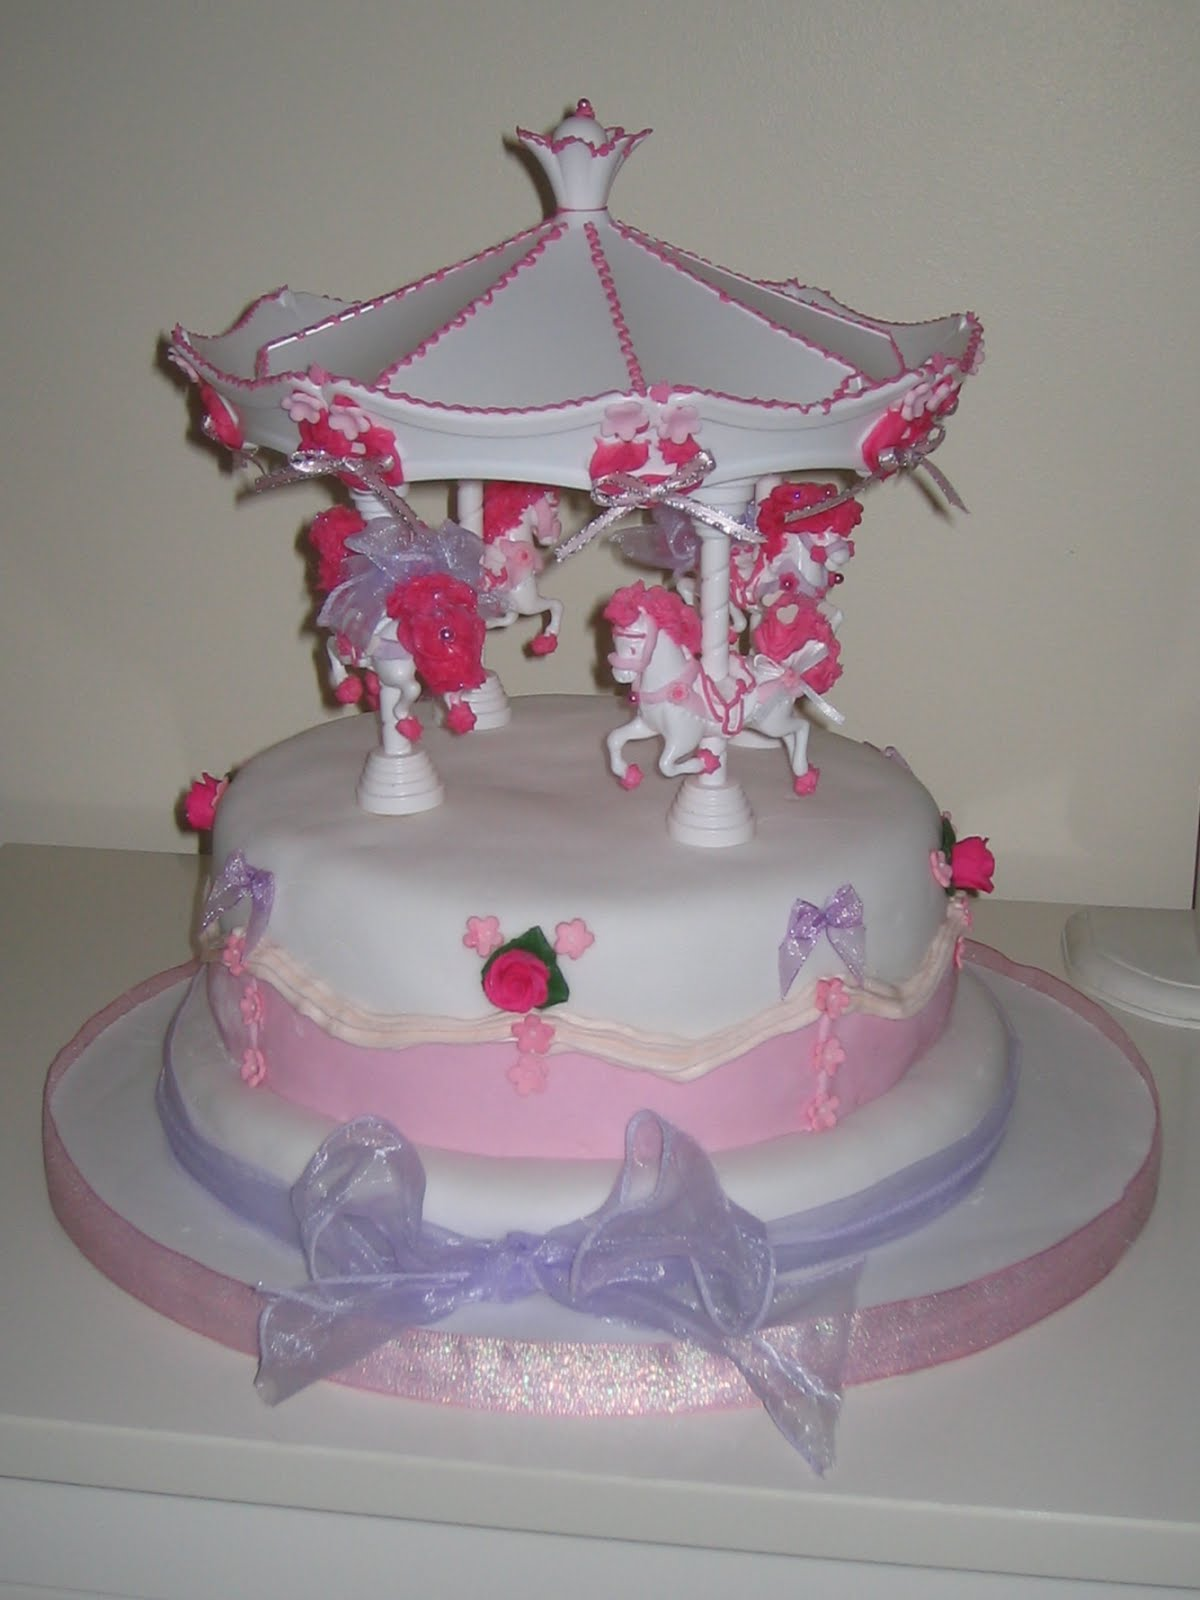 Carousel Birthday Cake http://betty-bakes.blogspot.com/2010/12/carousel-birthday-cake-for-reenaa.html